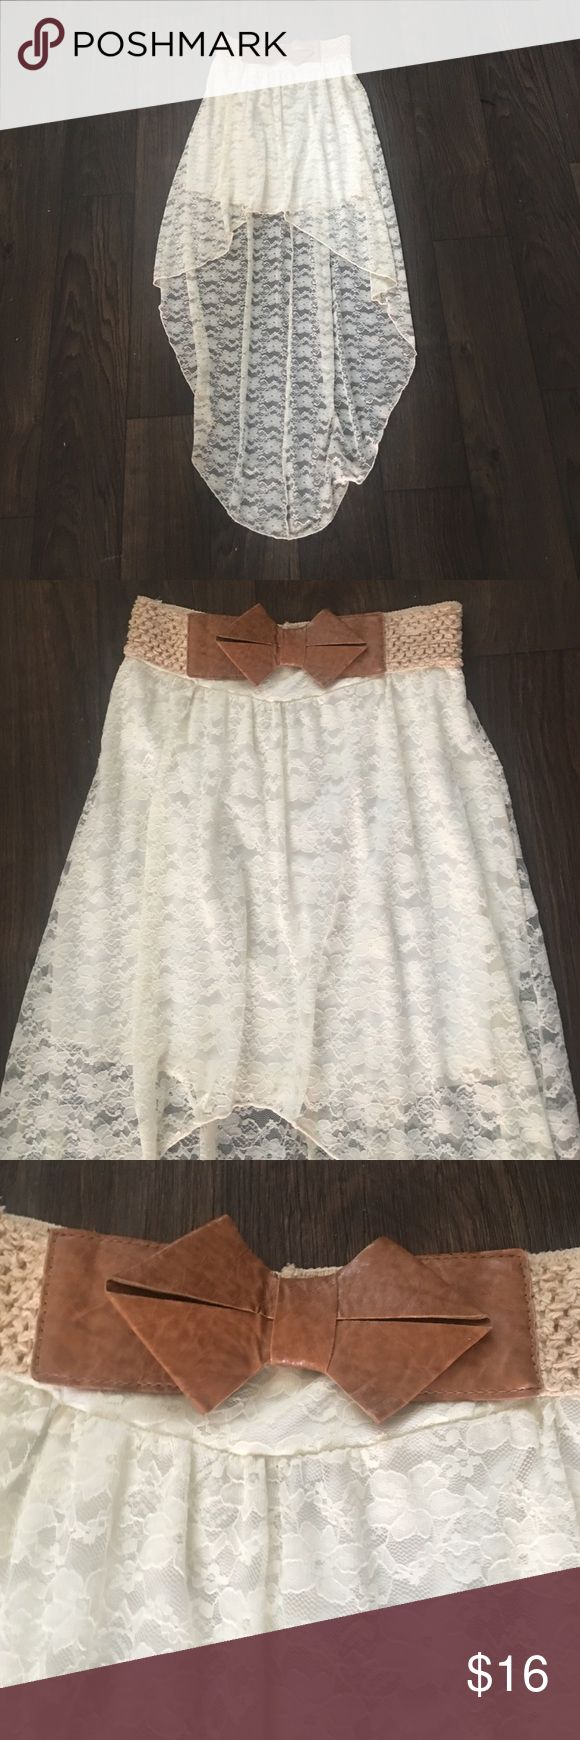 Cream lace skirt A high-low lace skirt with a brown bow belt on the waist!!😍 Rue 21 Skirts High Low